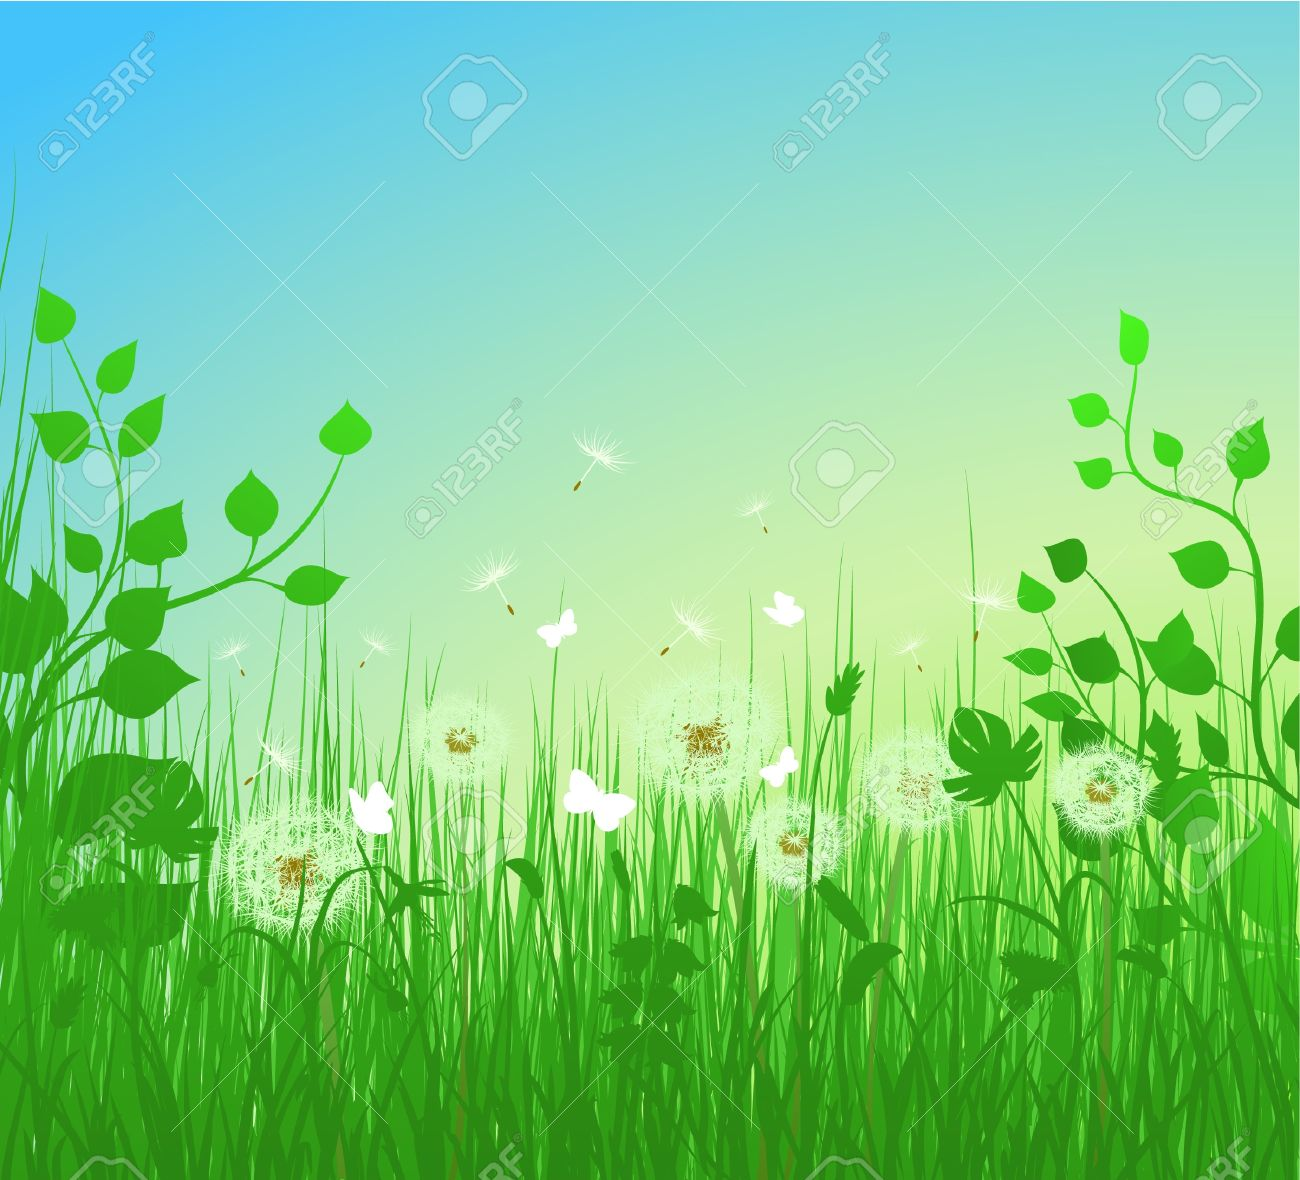 Dandelion Meadow Illustration Royalty Free Cliparts, Vectors, And.